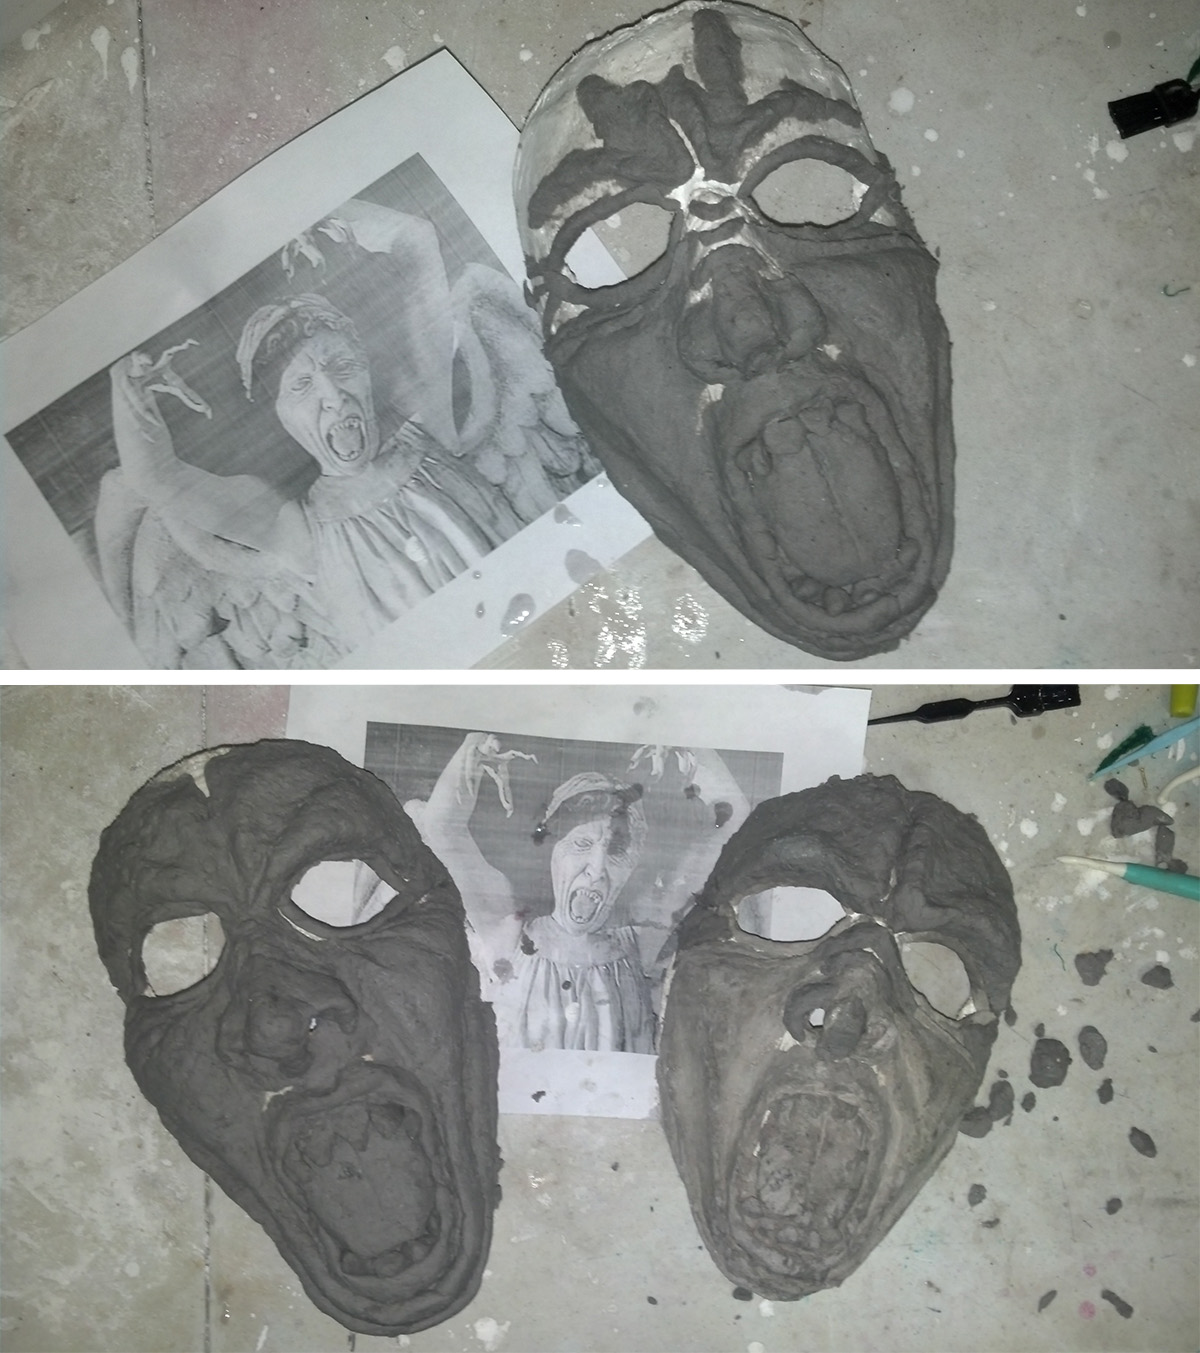 Paper clay being used to sculpt the features on the masks.